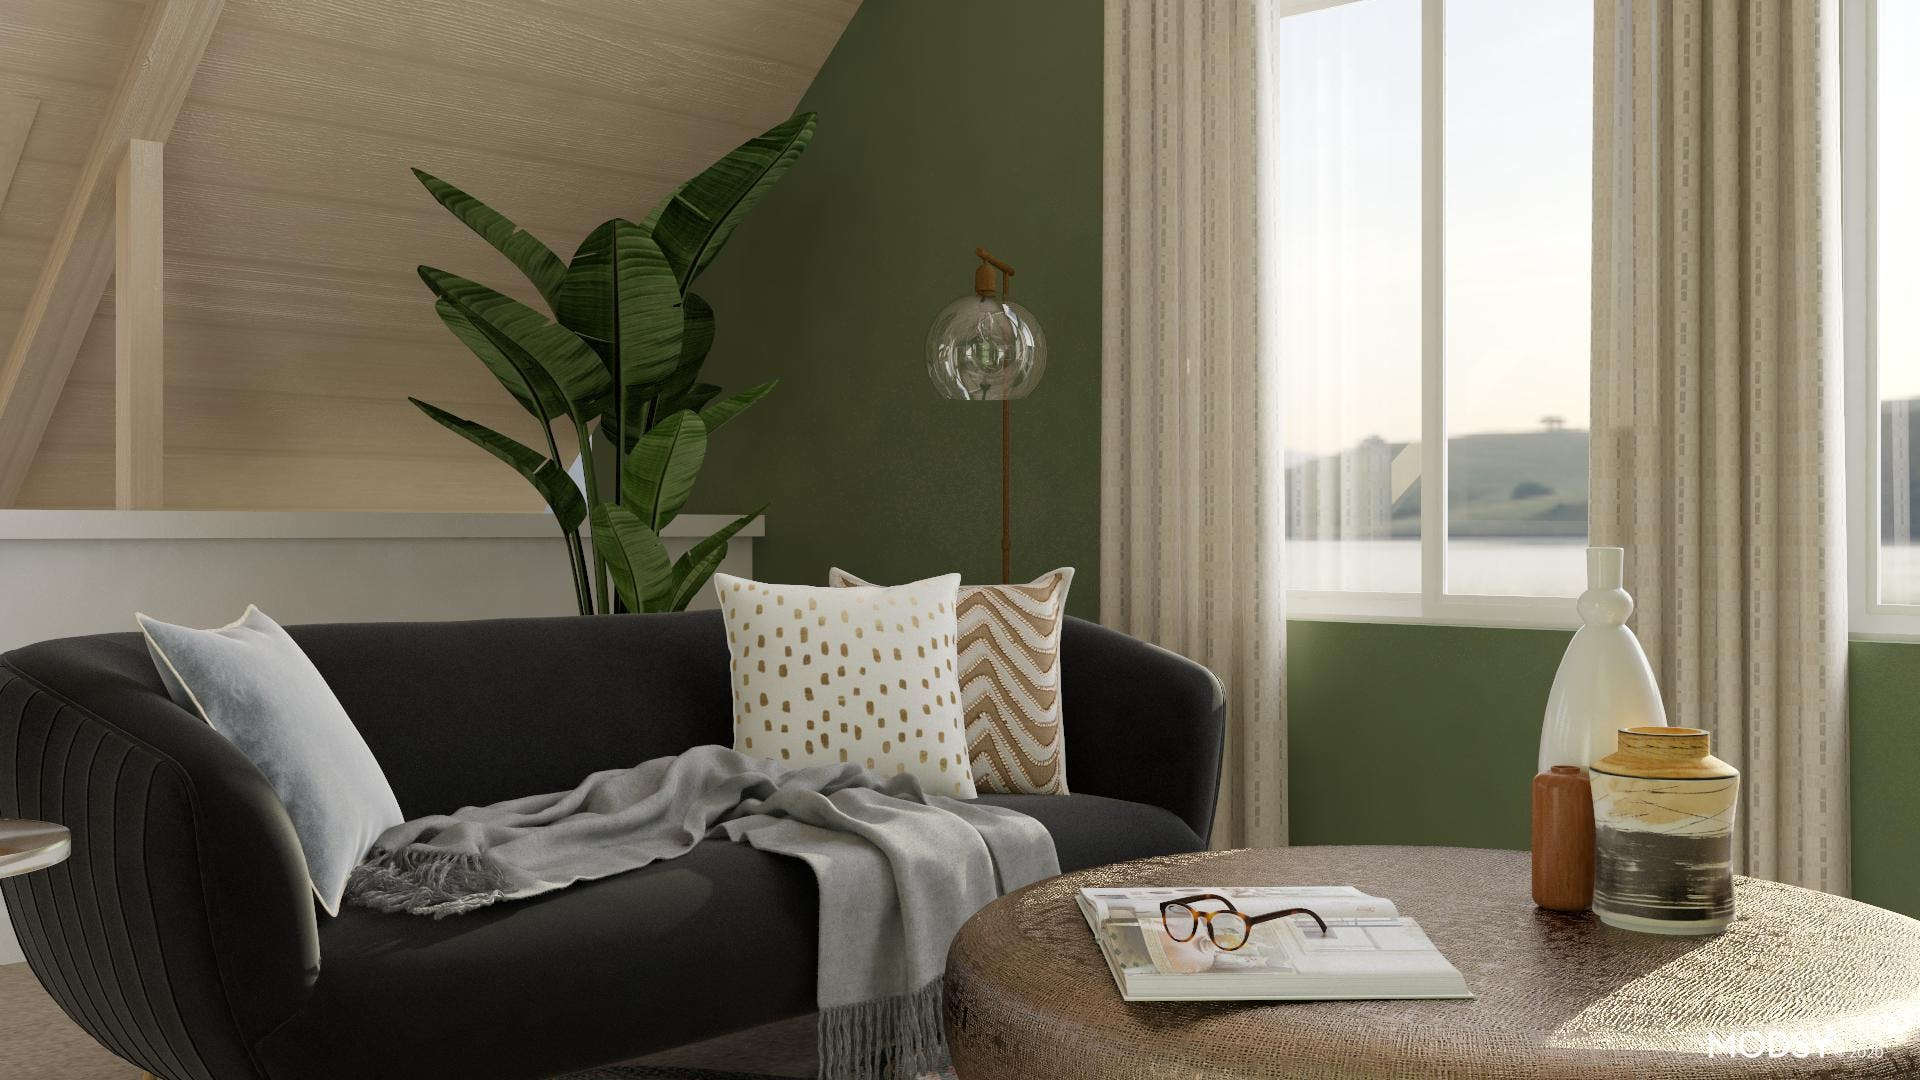 Making a Statement With an Earthy Color Palette